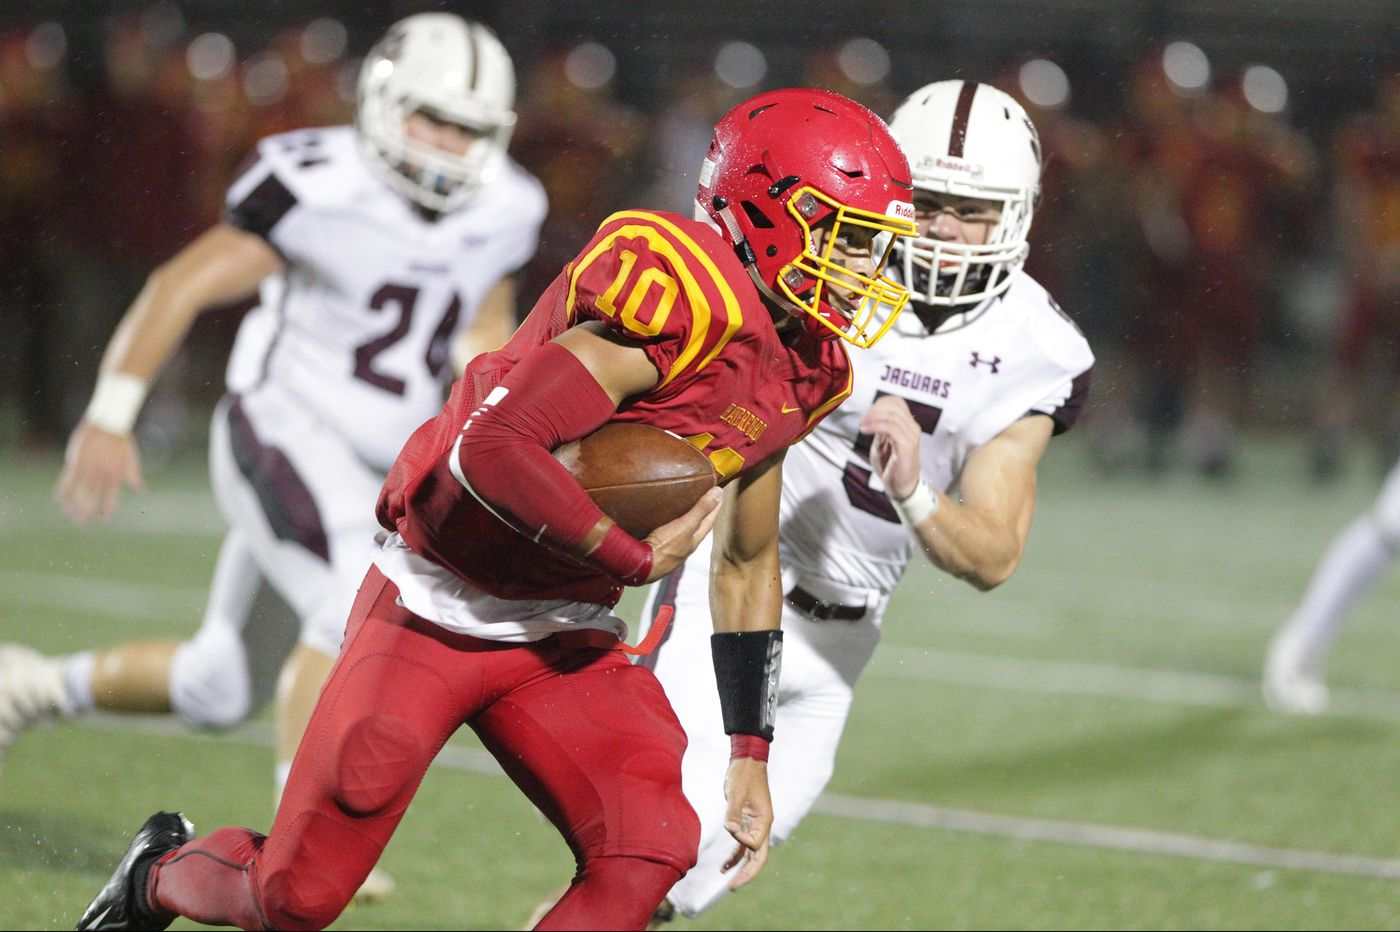 Friday Football preview: Haverford High seeks to halt District 1 playoff woes